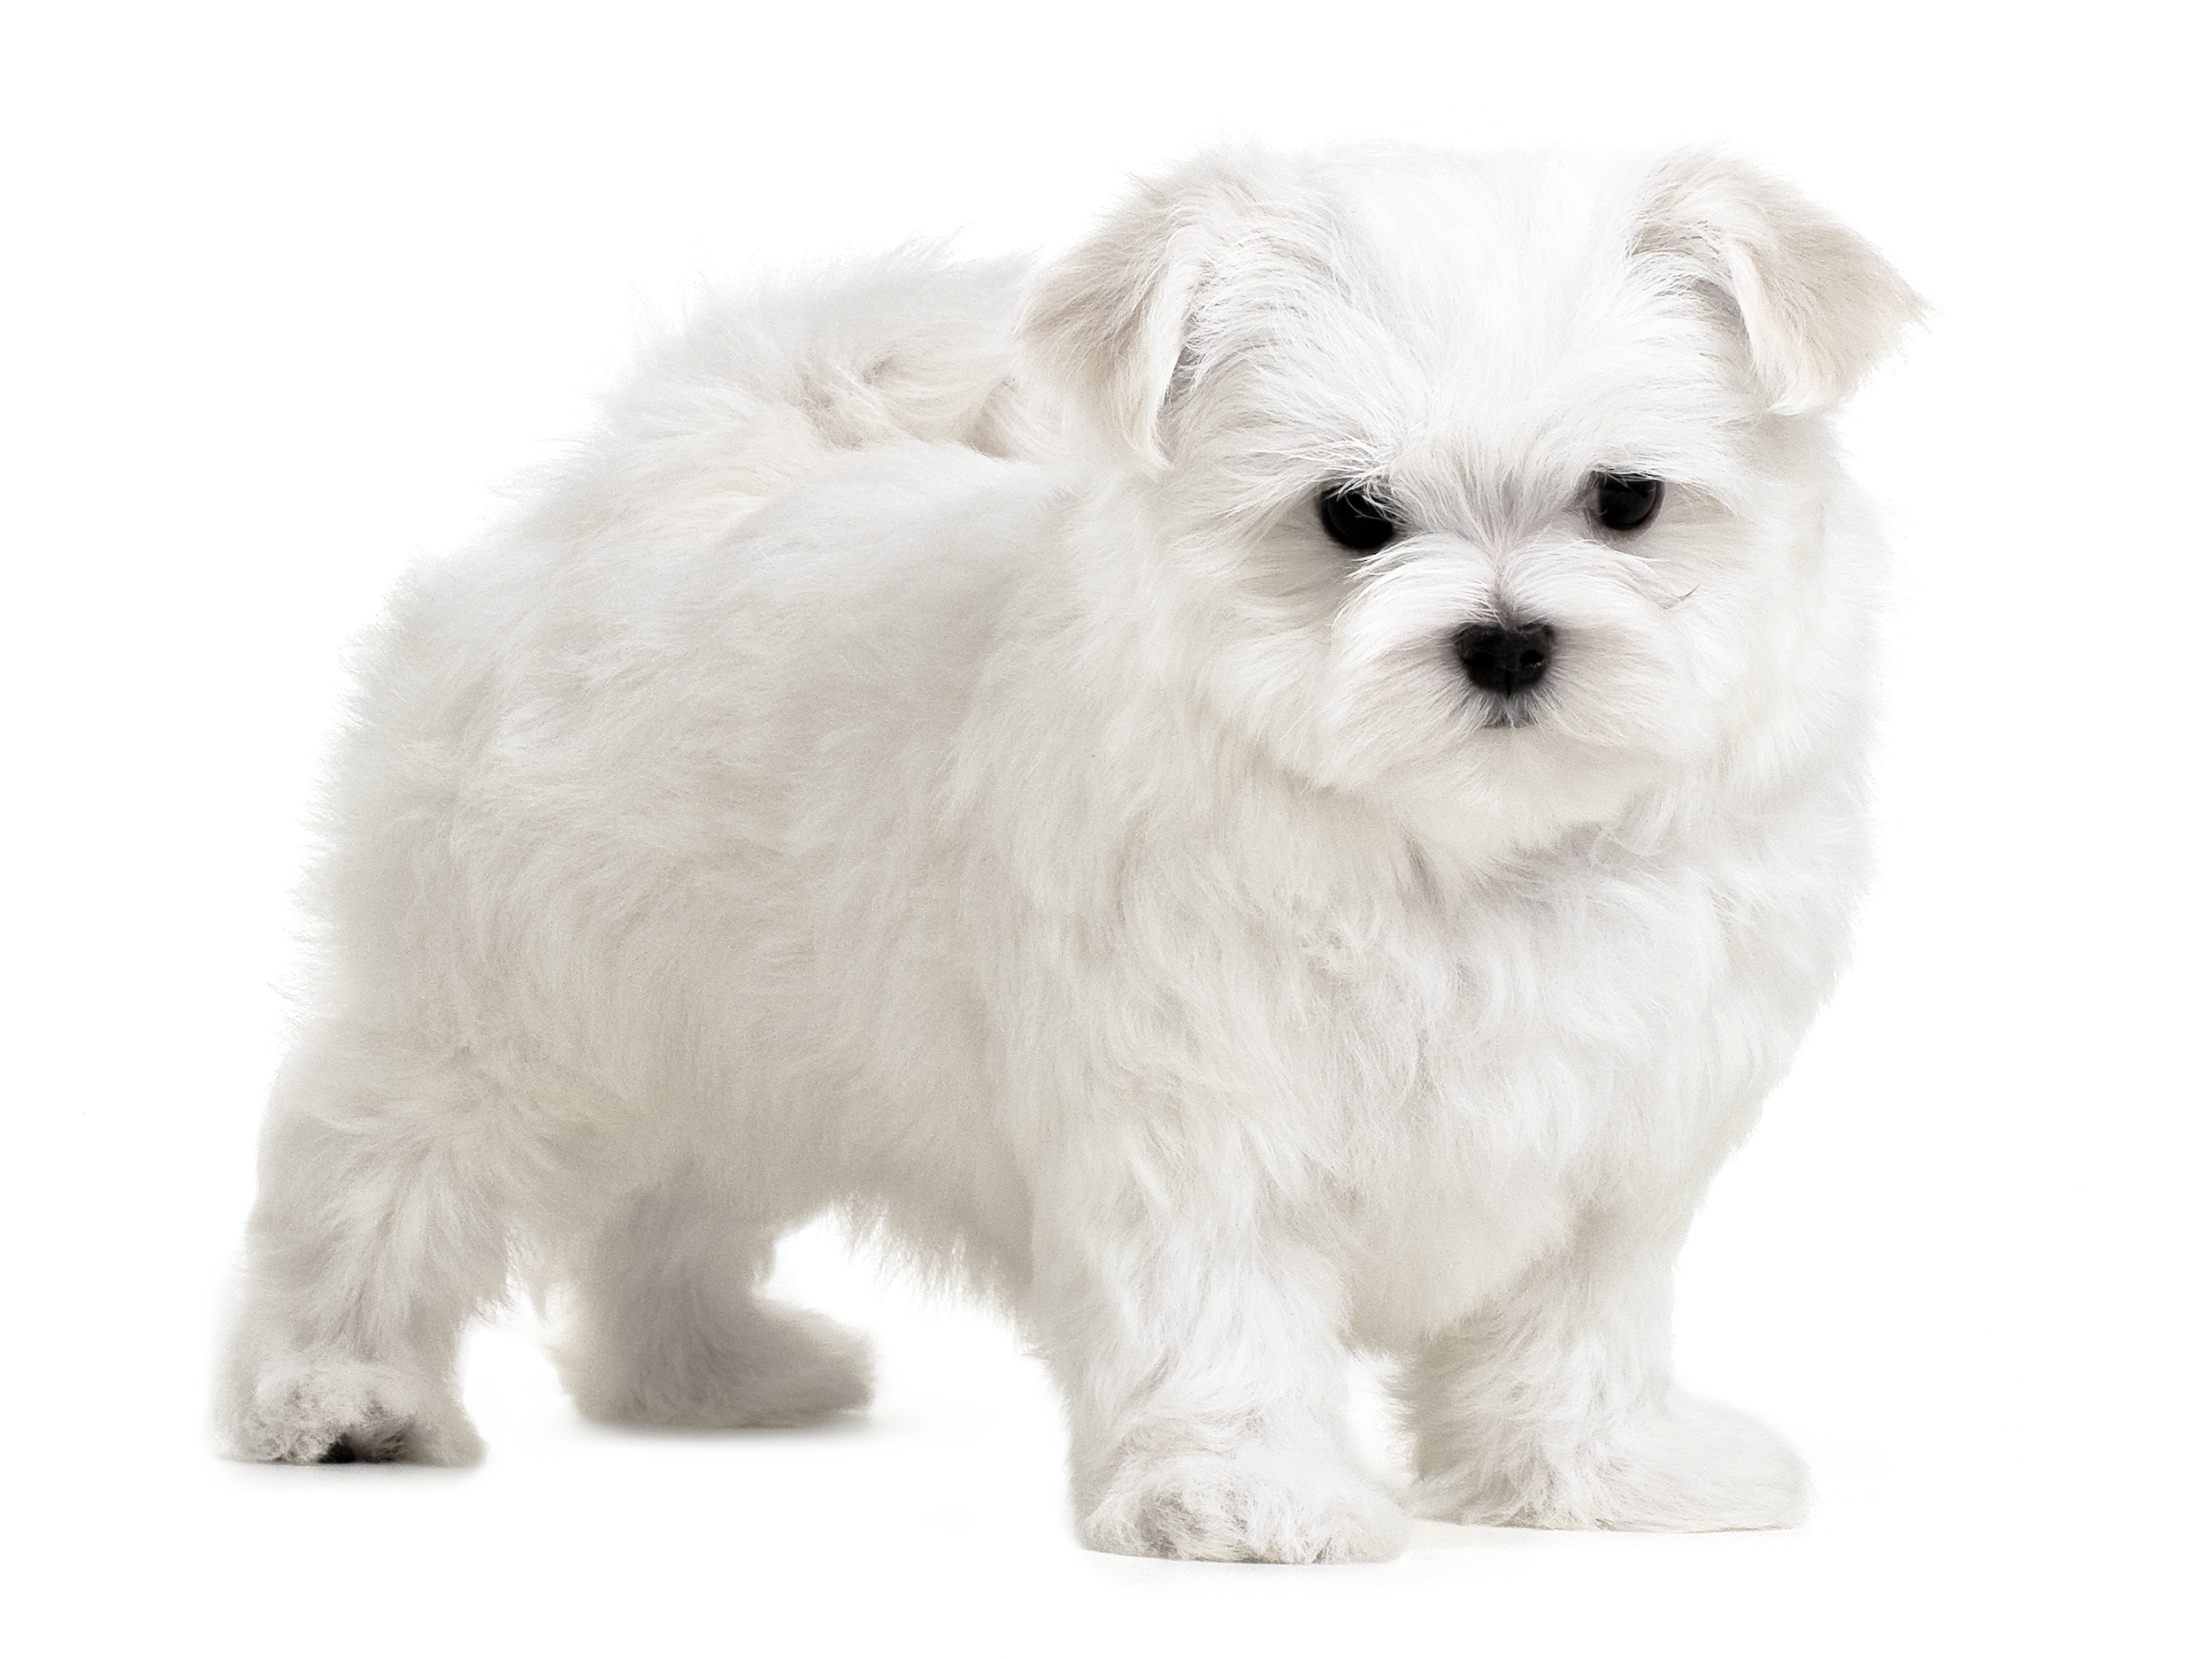 Maltese - Royal Canin